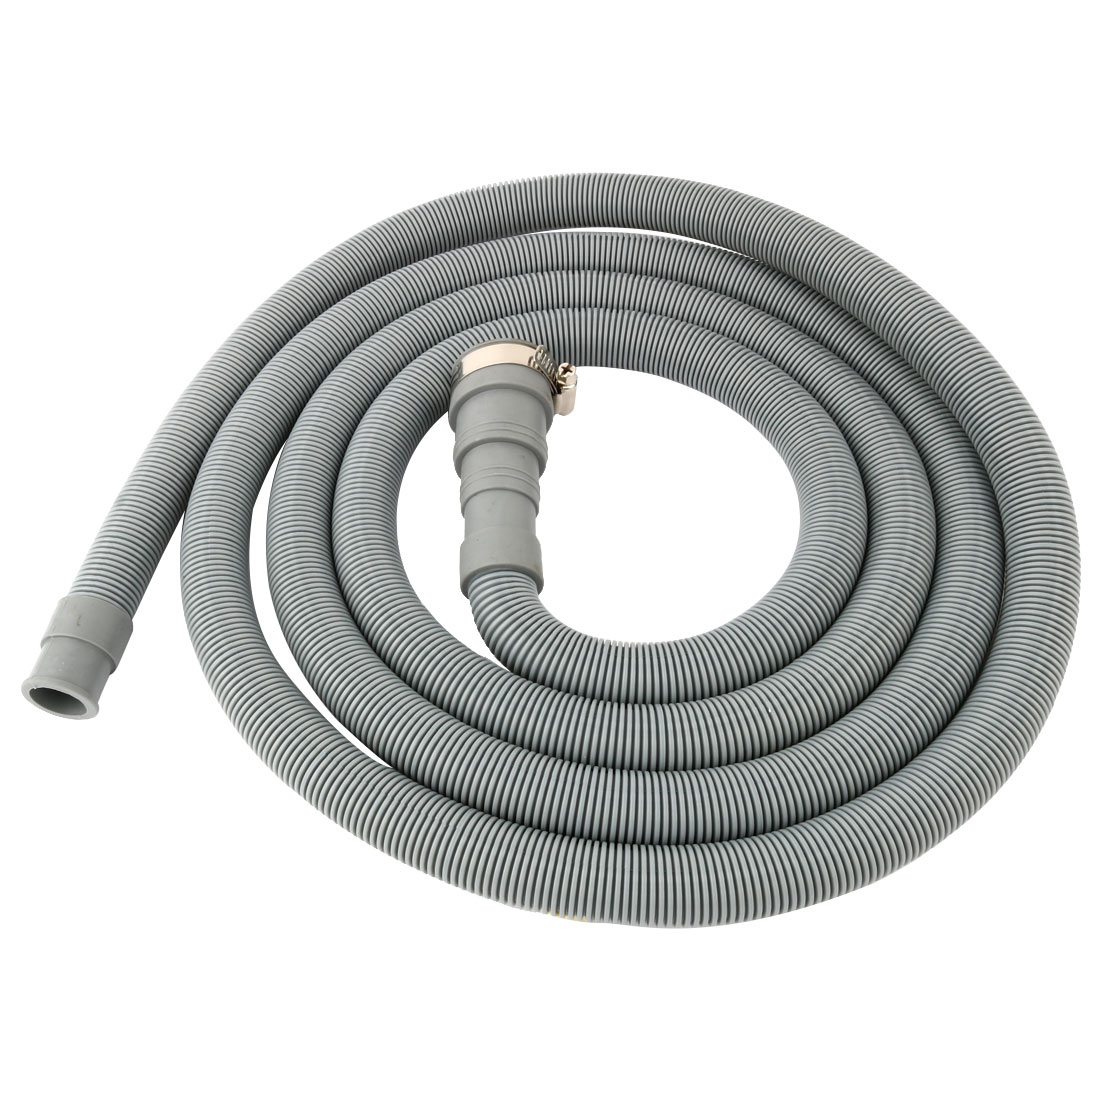 9.8Ft PVC Washing Machine Drain Hose Waster Water Pipe Extension Kit